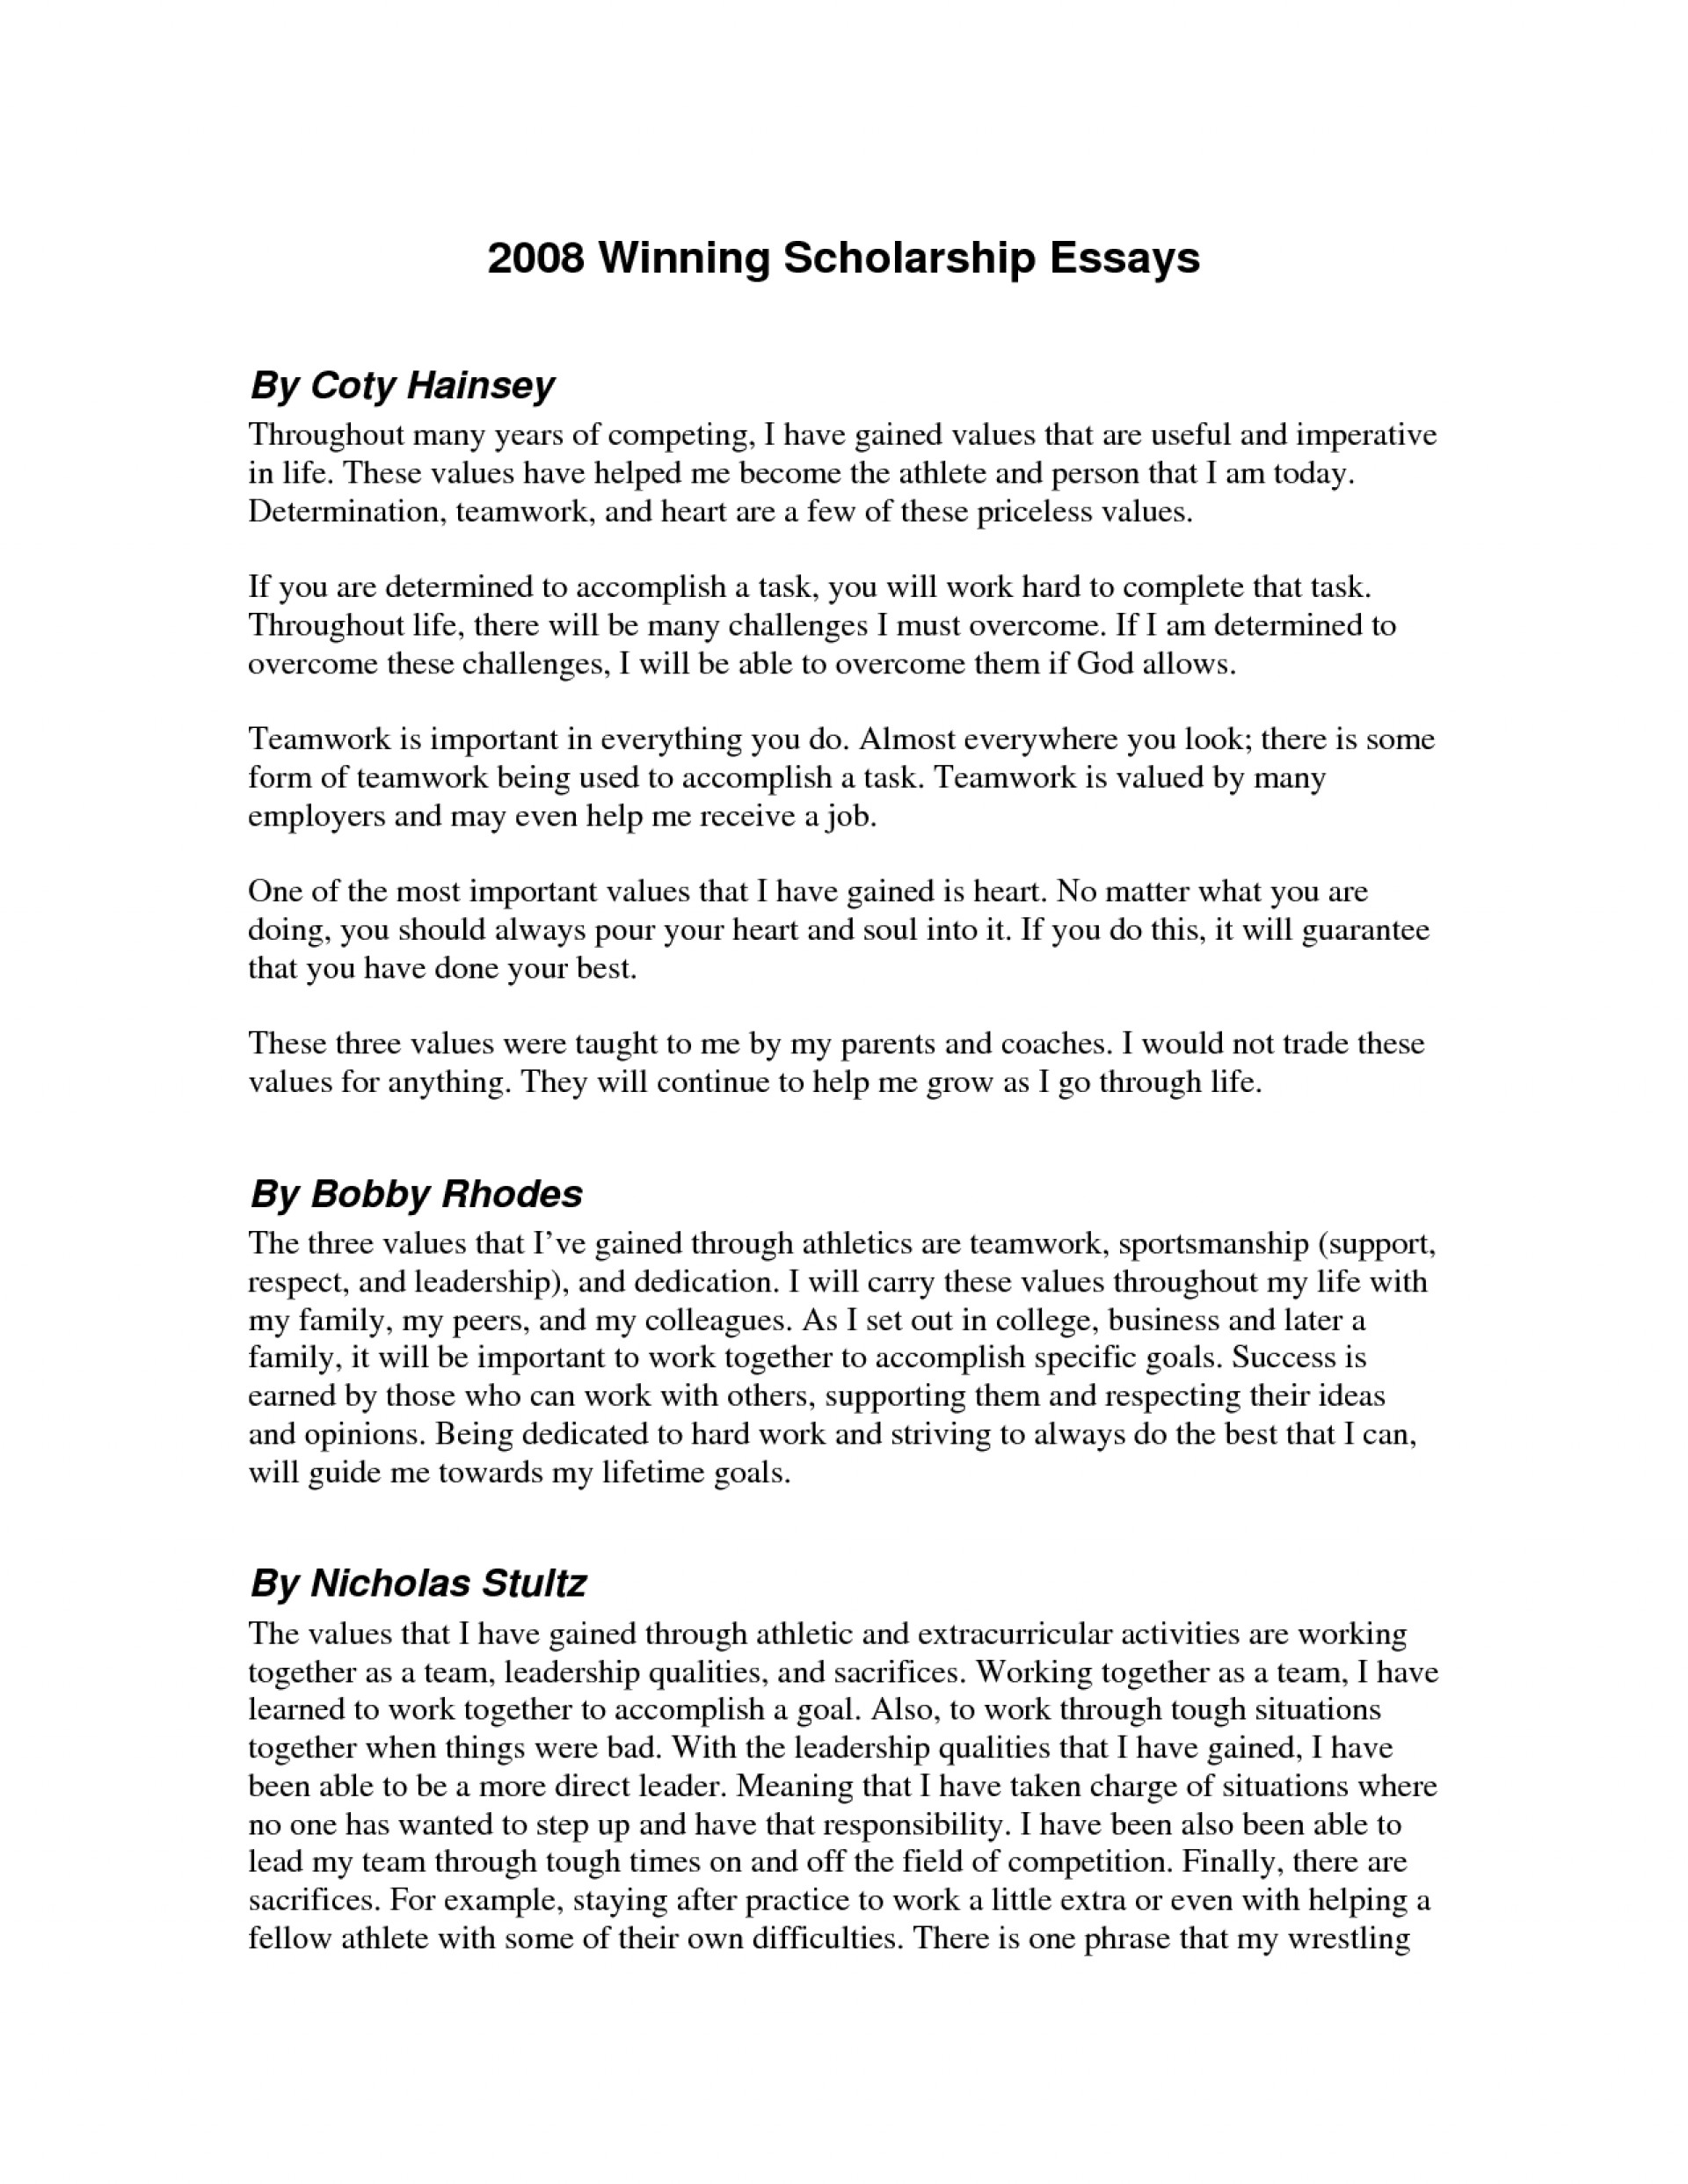 005 Winning Scholarship Essays Essay Example Awesome Collection Of Best Guidelines Unique What Do You Exceptional Examples Pdf Gilman How To Write 1920